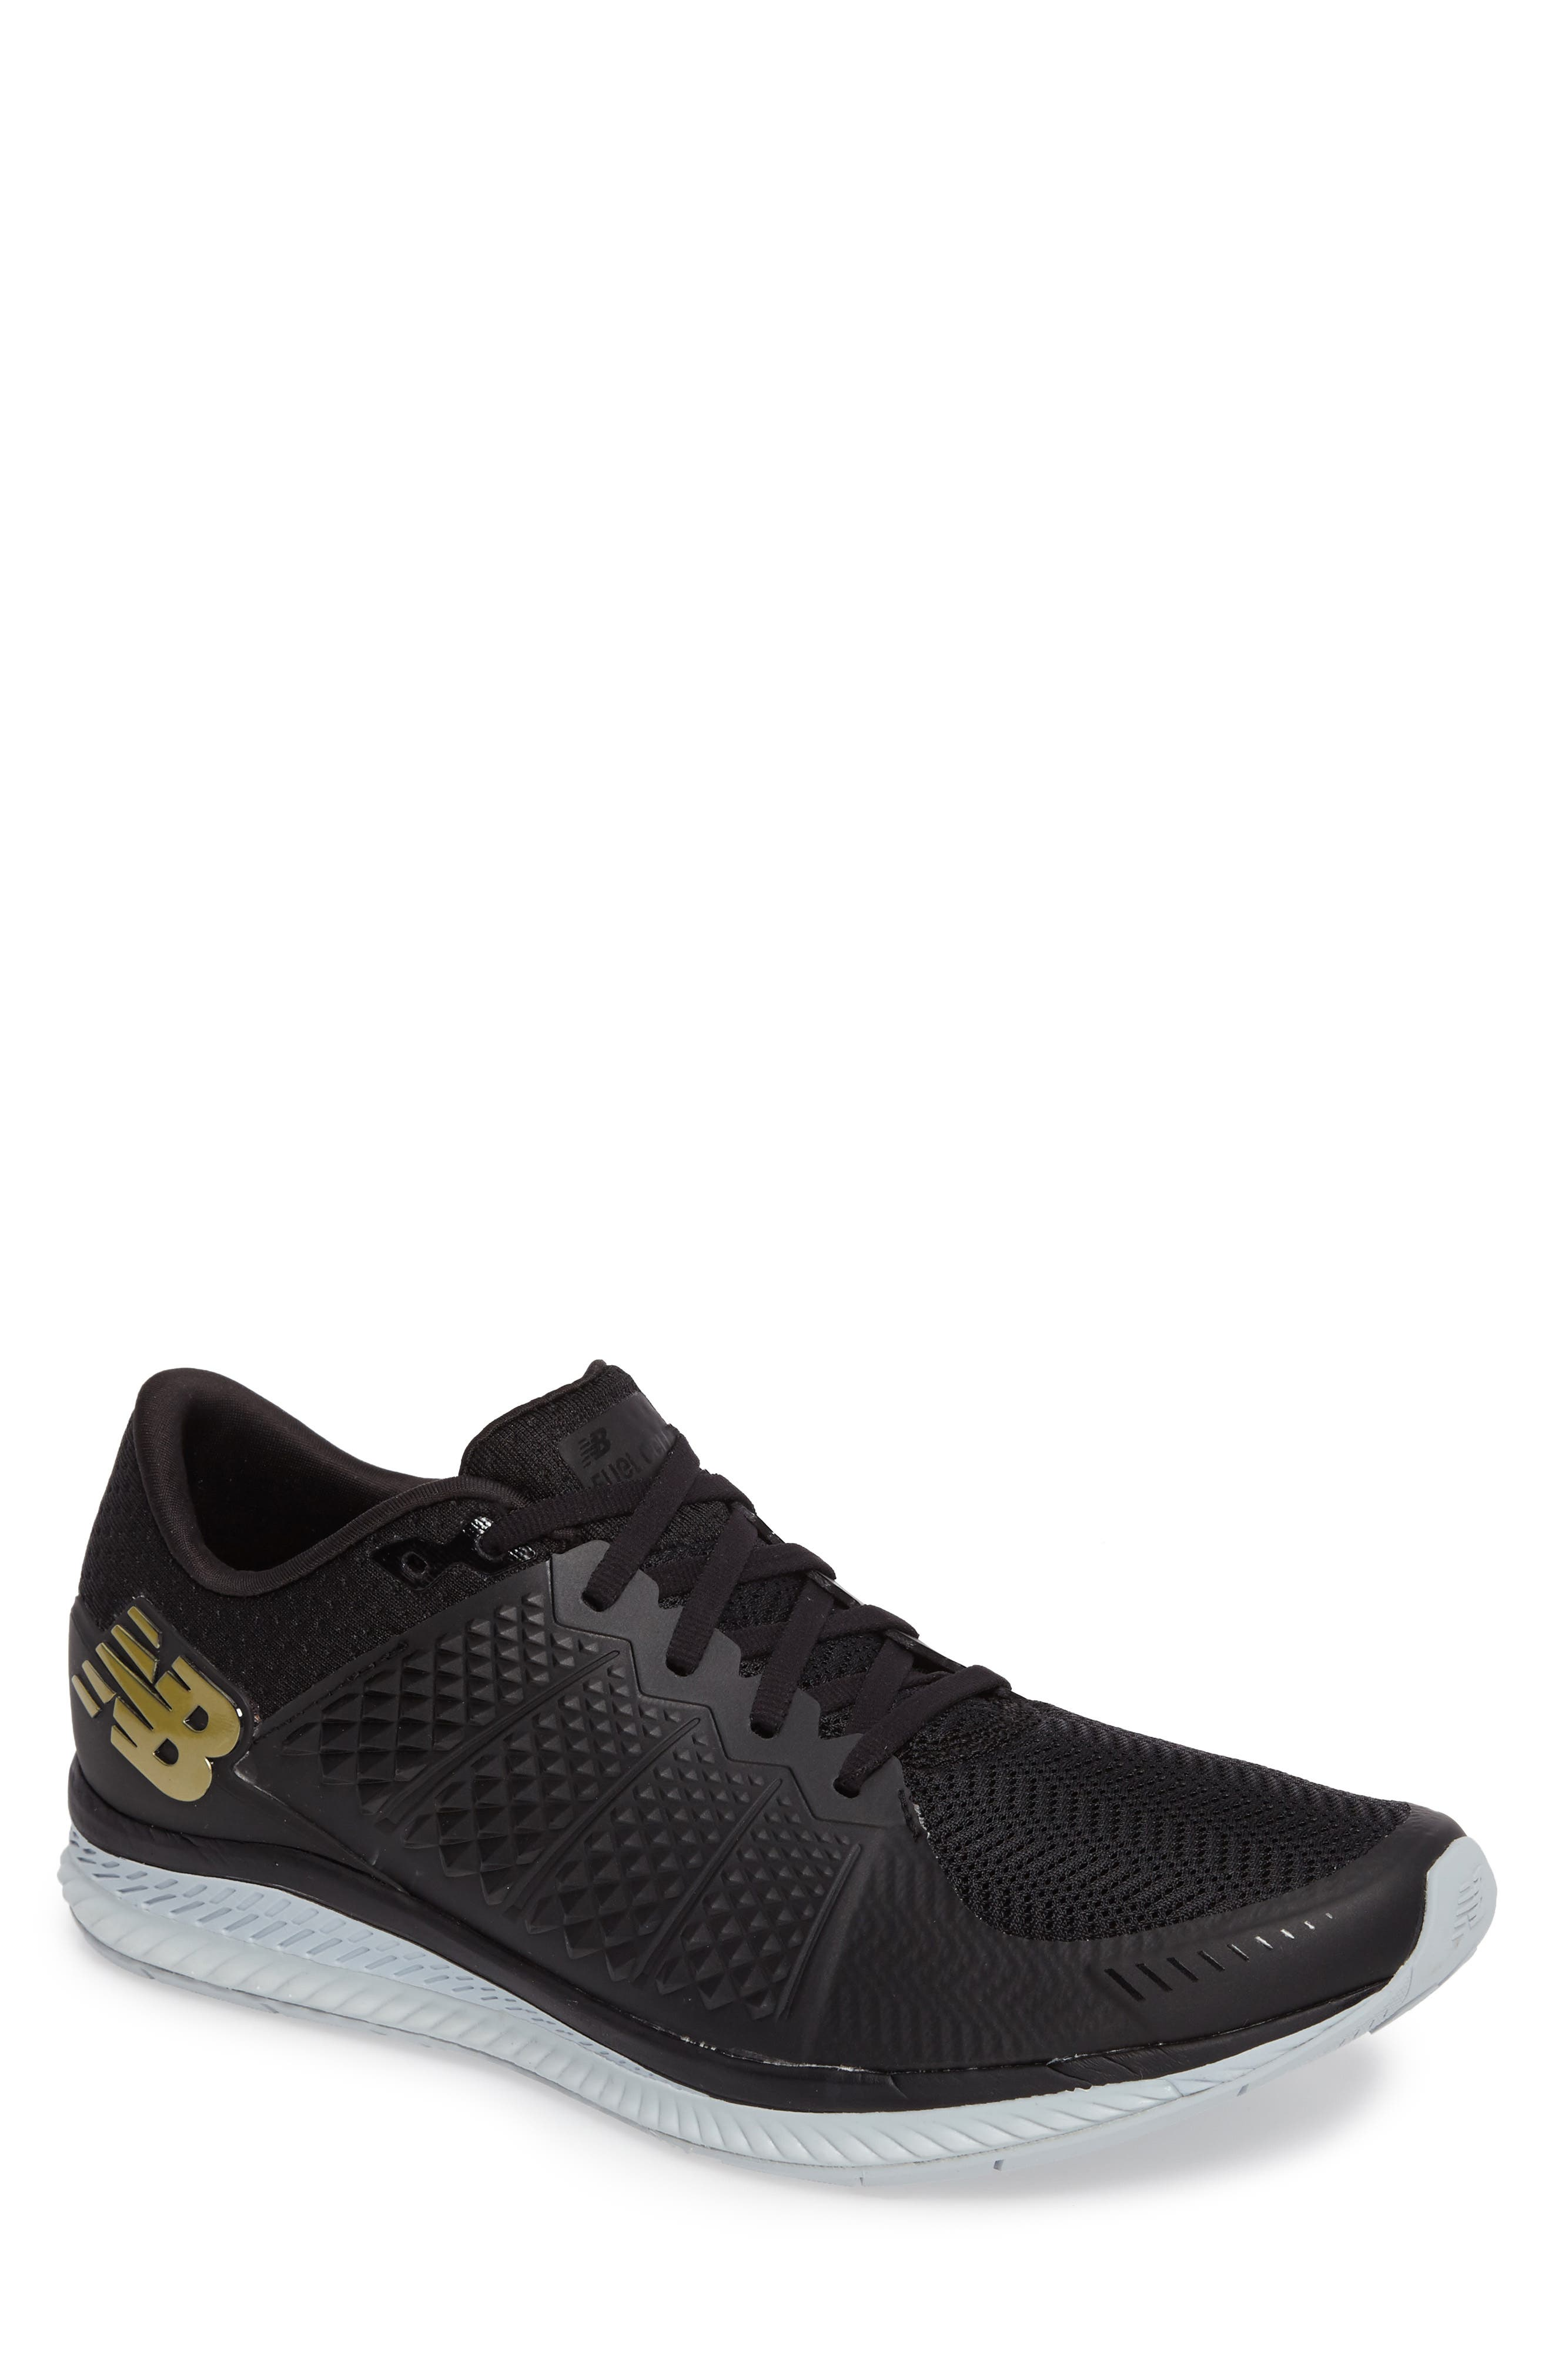 Vazee Fuel Cell Running Shoe,                             Main thumbnail 1, color,                             001